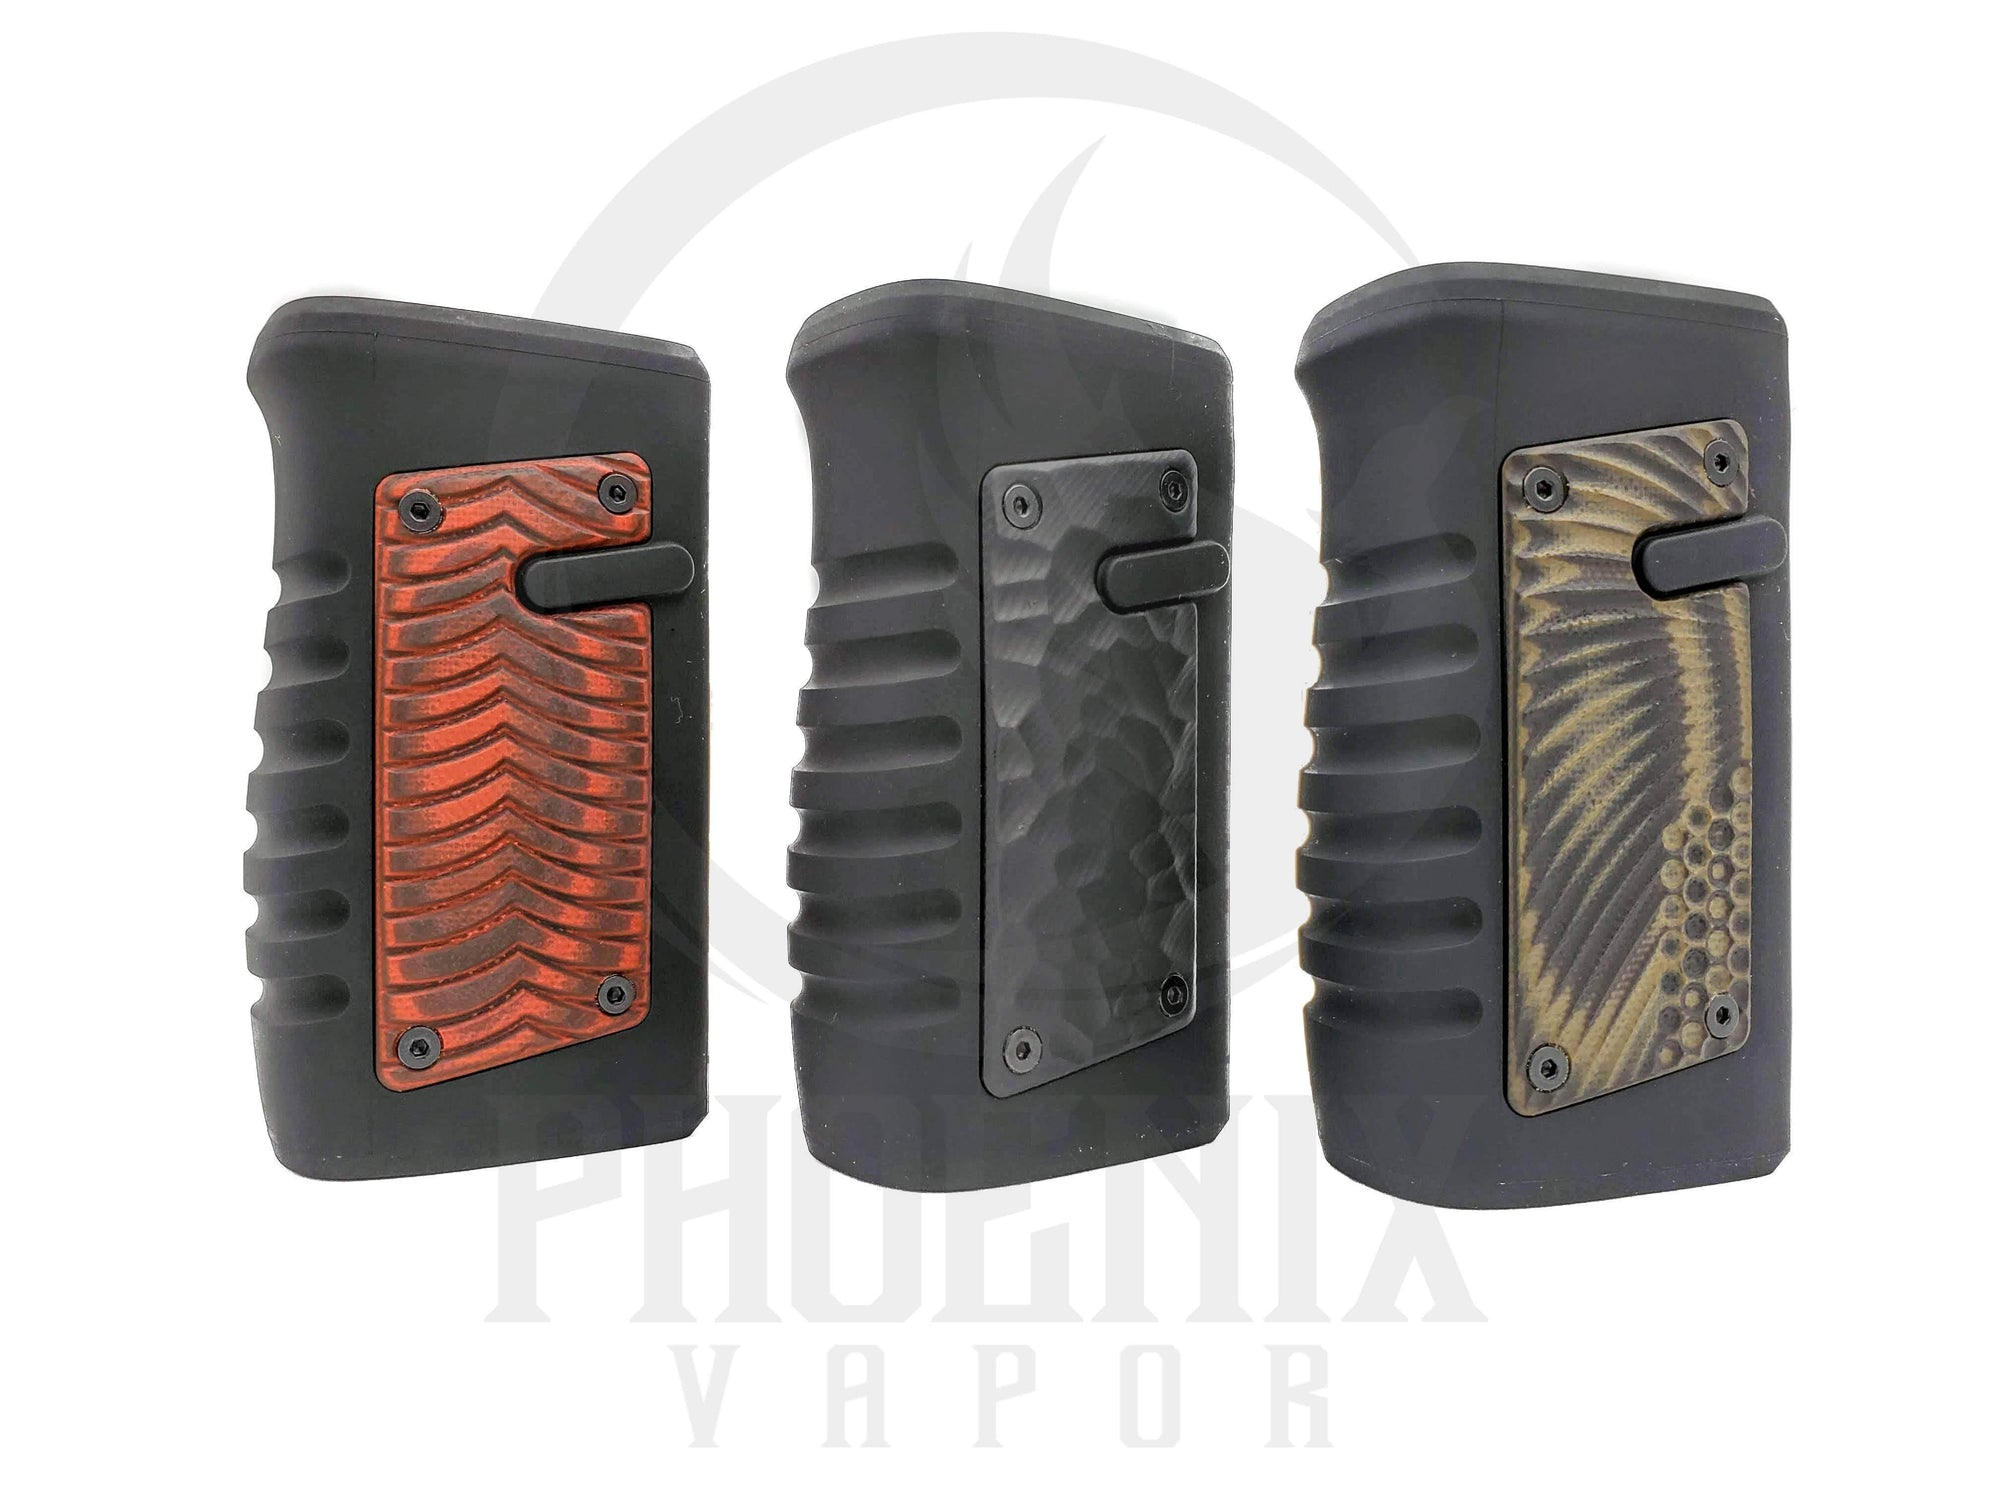 Vandy Vape (Mods) Regulated Mod Red Ridge Jackaroo MOD by Vandy Vape